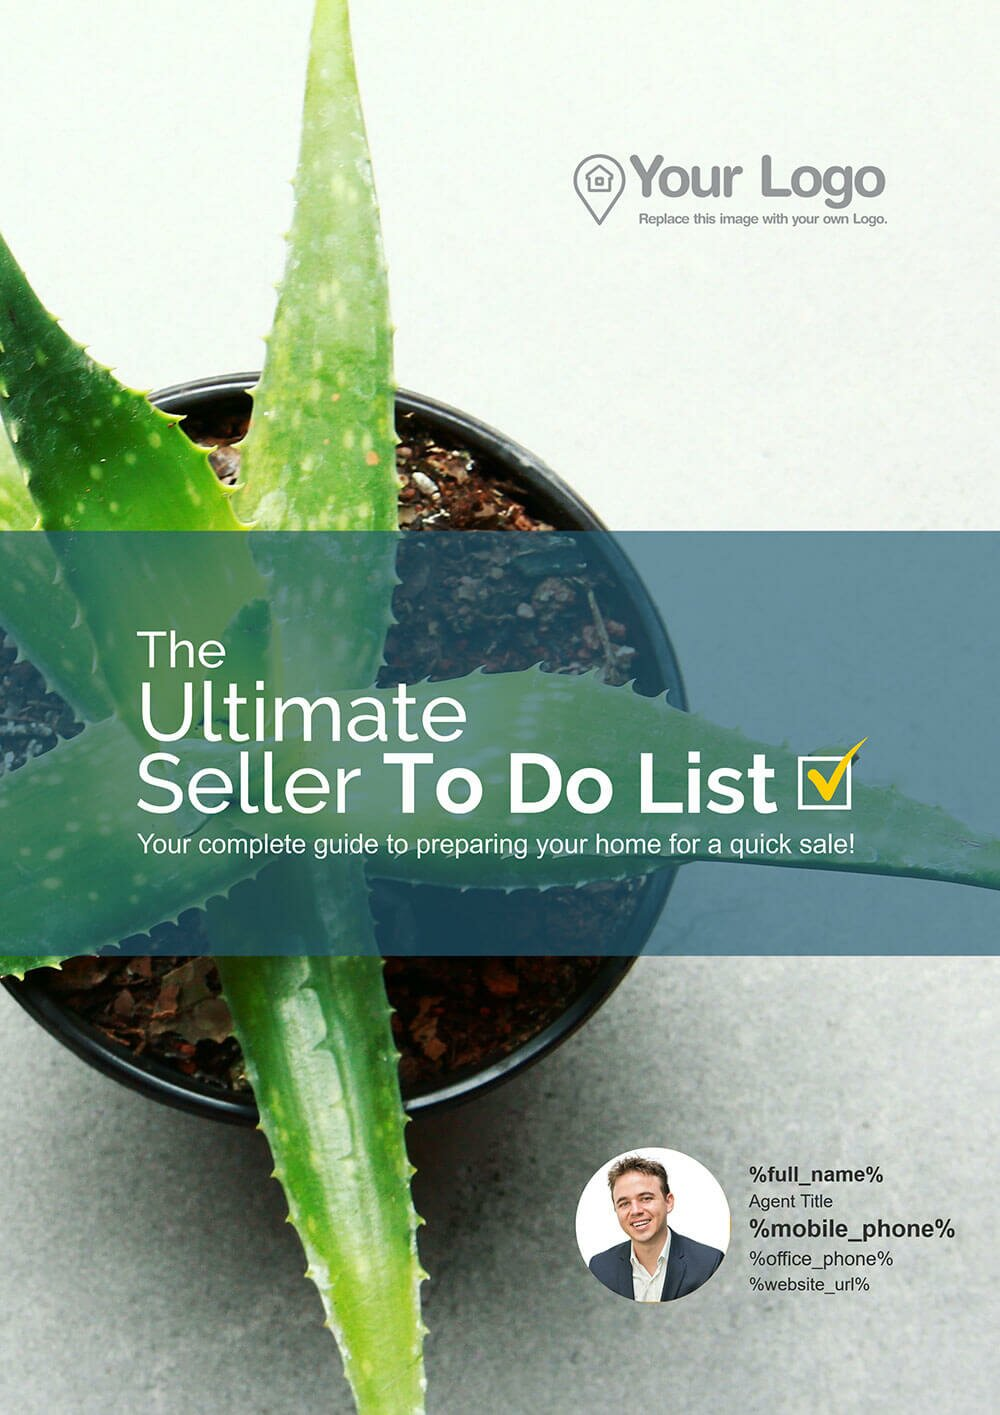 The ultimate seller to do list